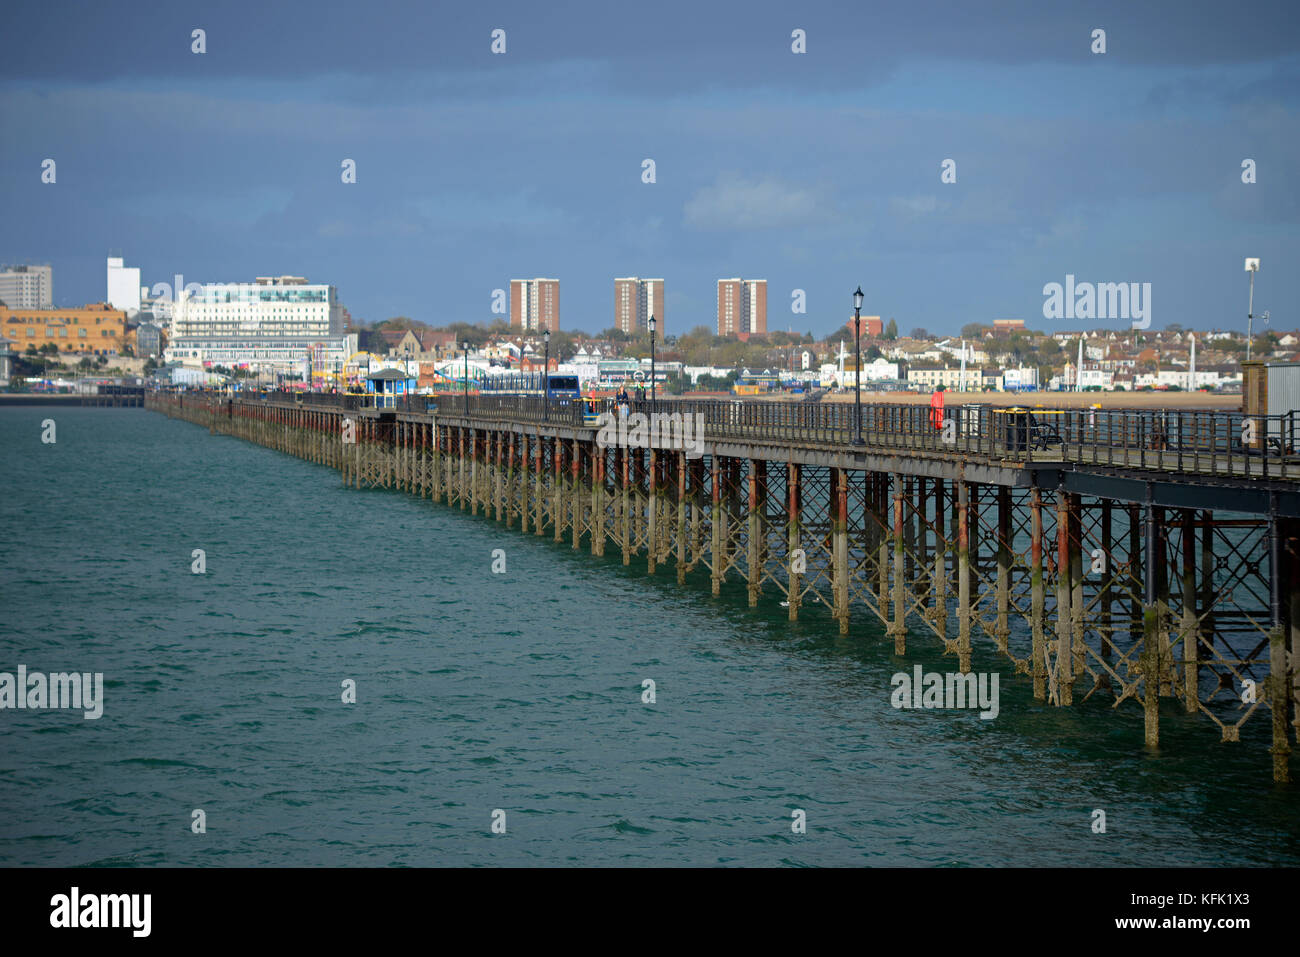 Southend Pier in the Thames Estuary. Ironwork iron structure legs. Space for copy - Stock Image